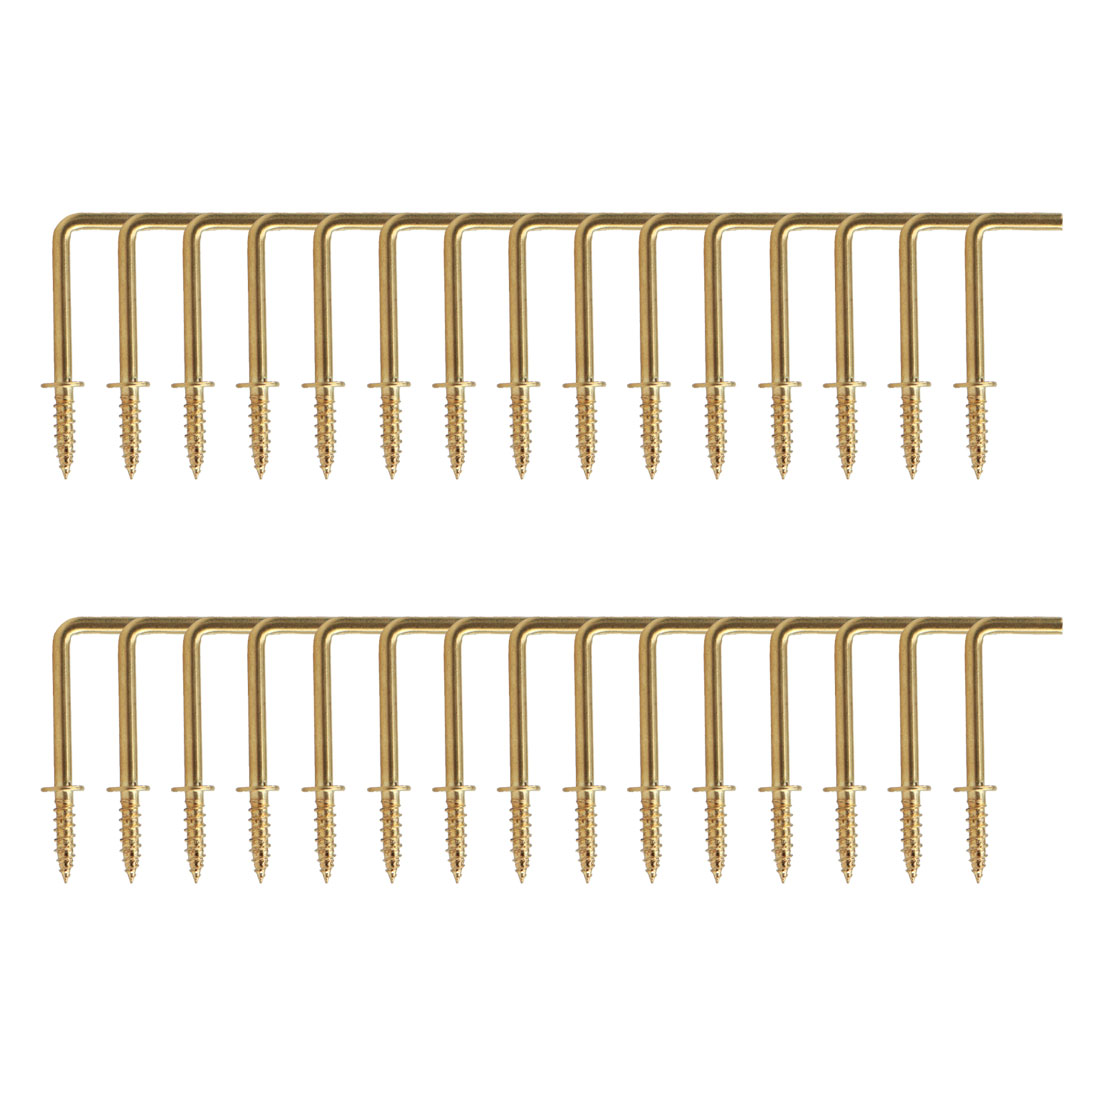 30pcs Cup Square Hook 3/4 Inch Brass Plating Coated Hanger Holder Gold Tone